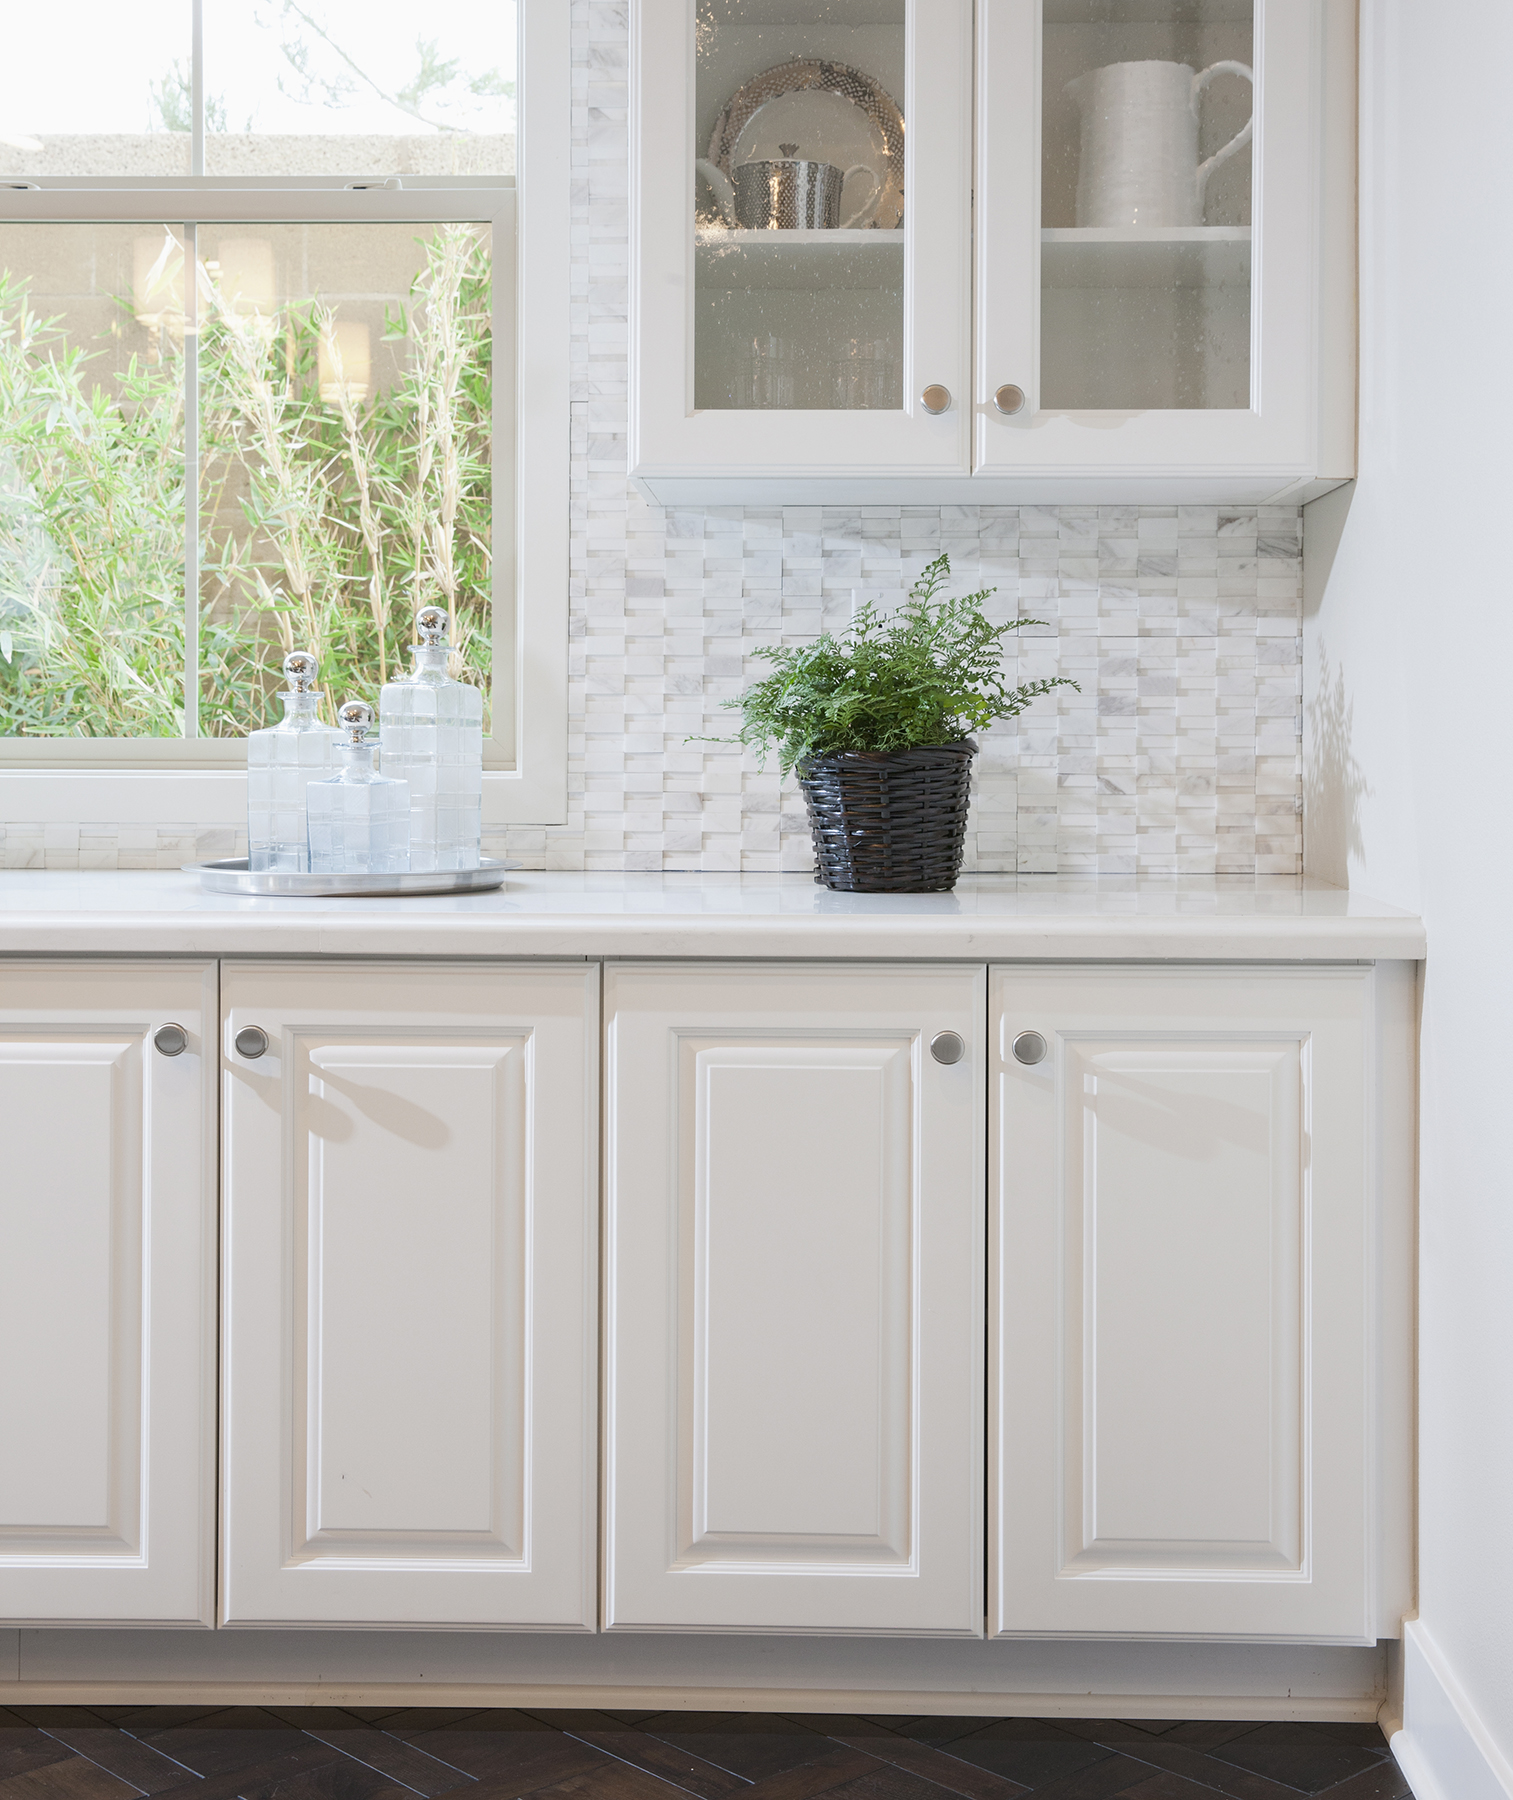 White kitchen cabinets with raised panels